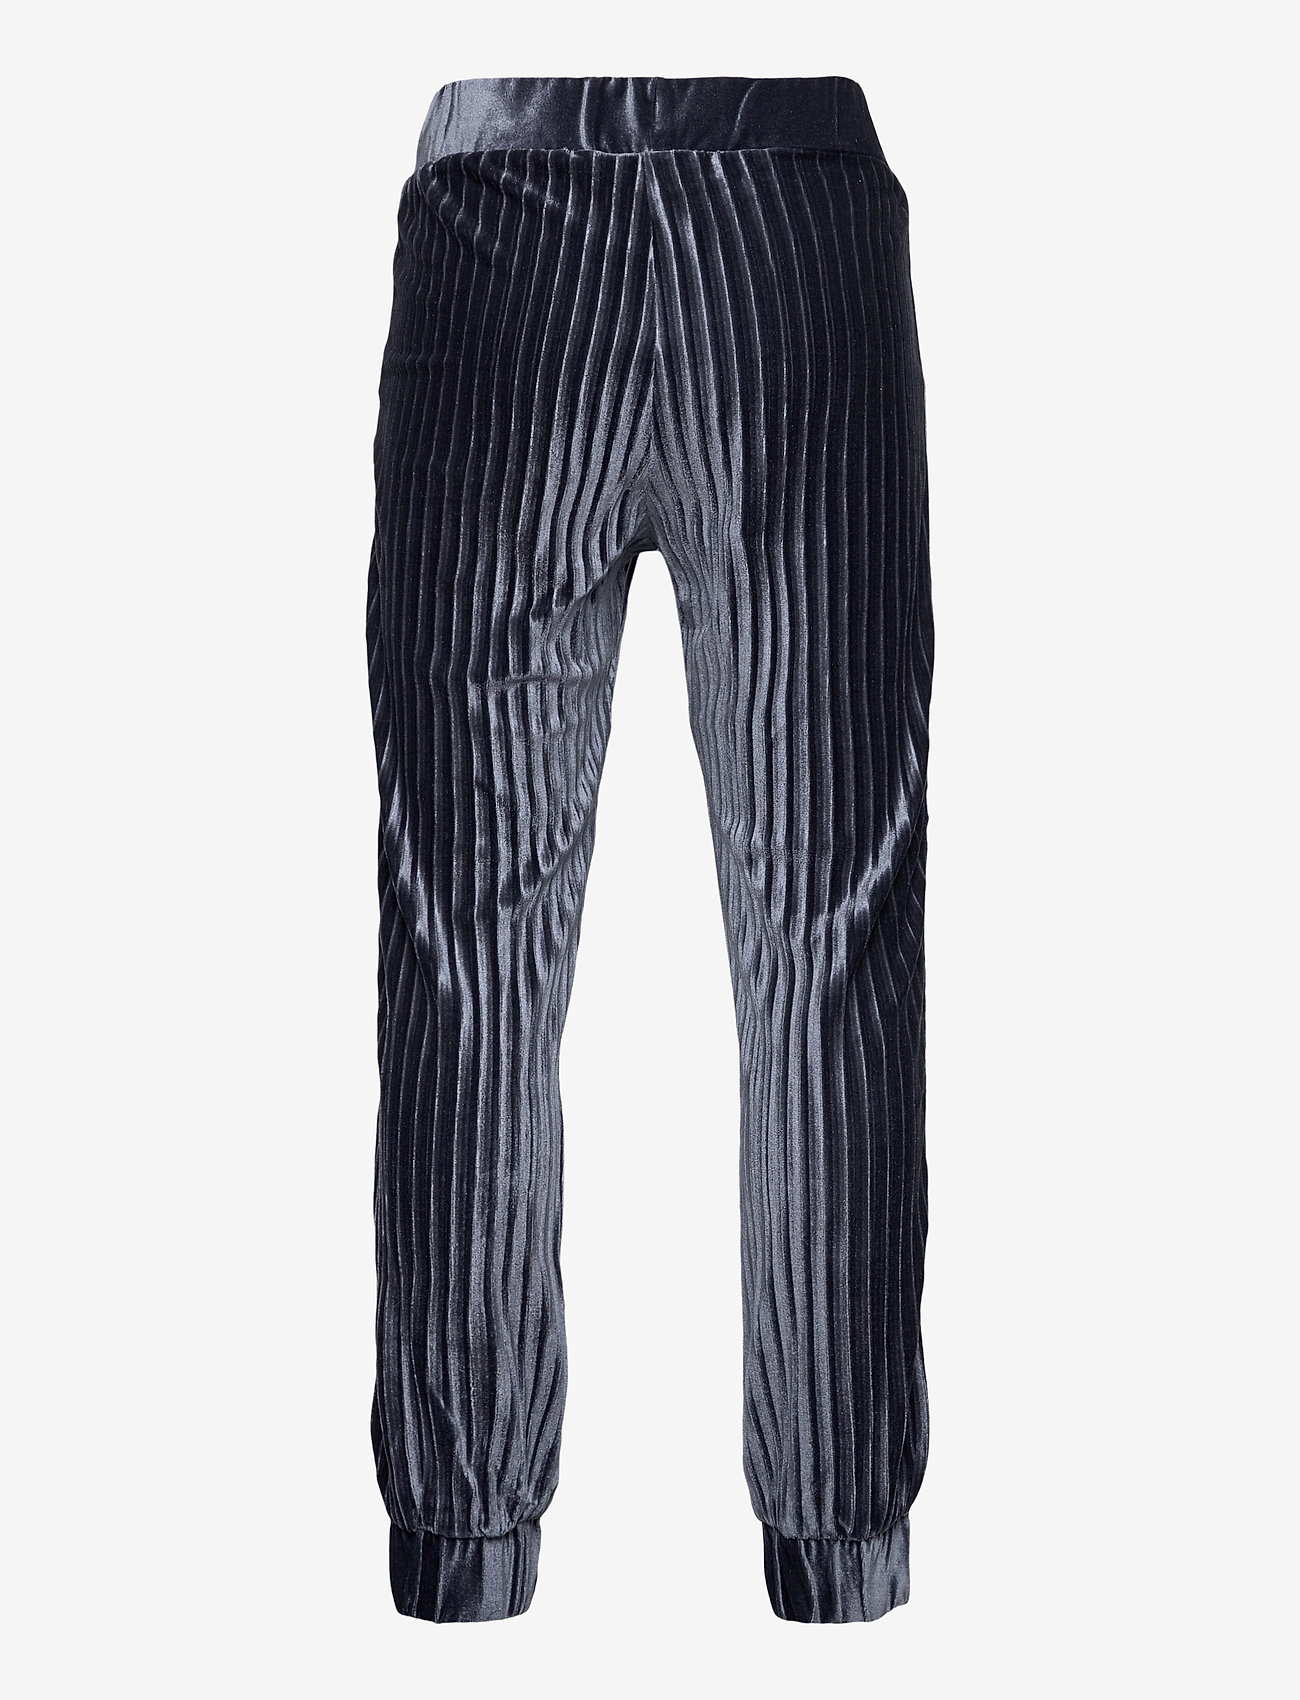 Hust & Claire - Taja - Trousers - trousers - navy - 1